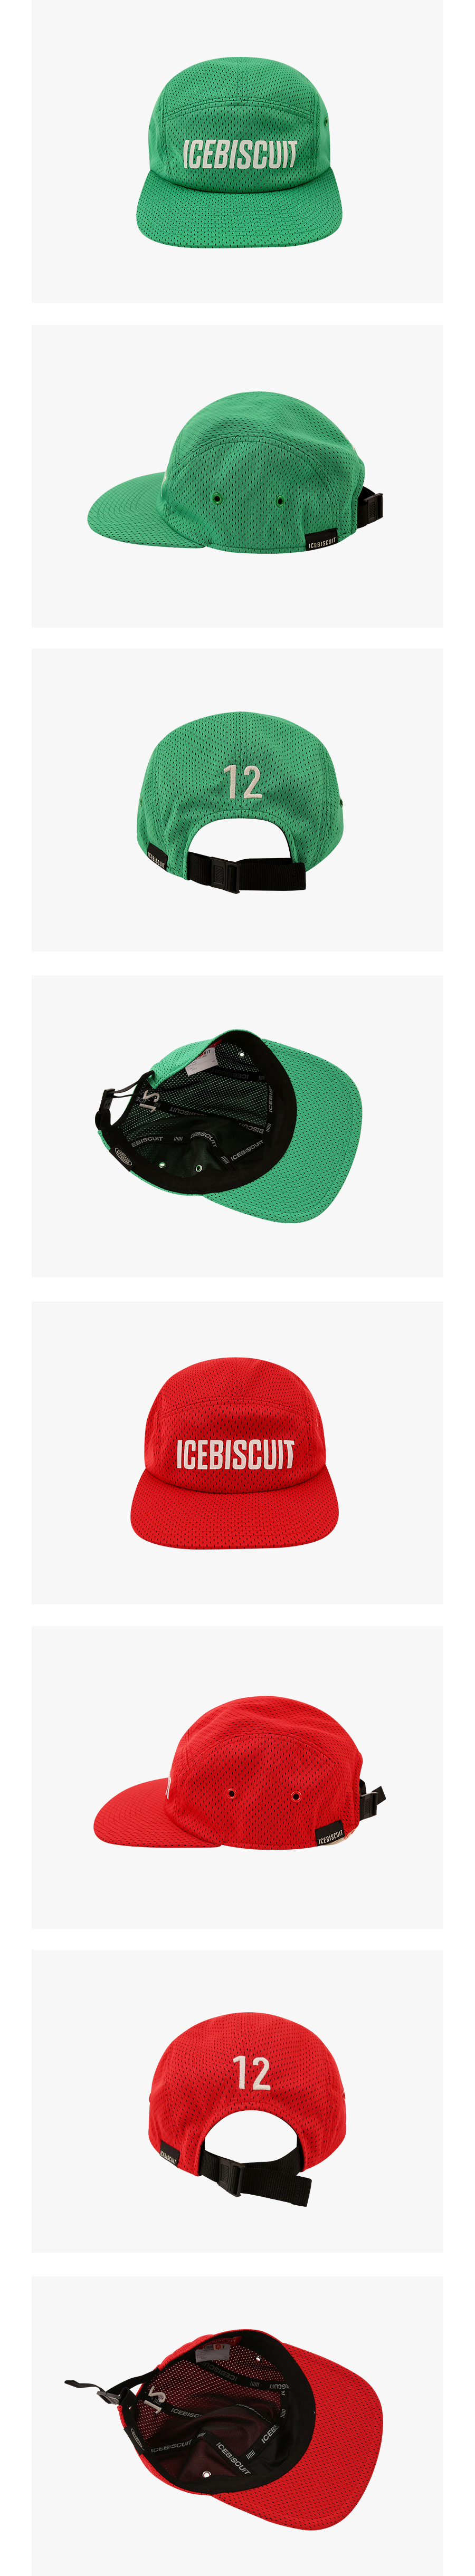 Icebiscuit letter point mesh camp cap 상세 이미지